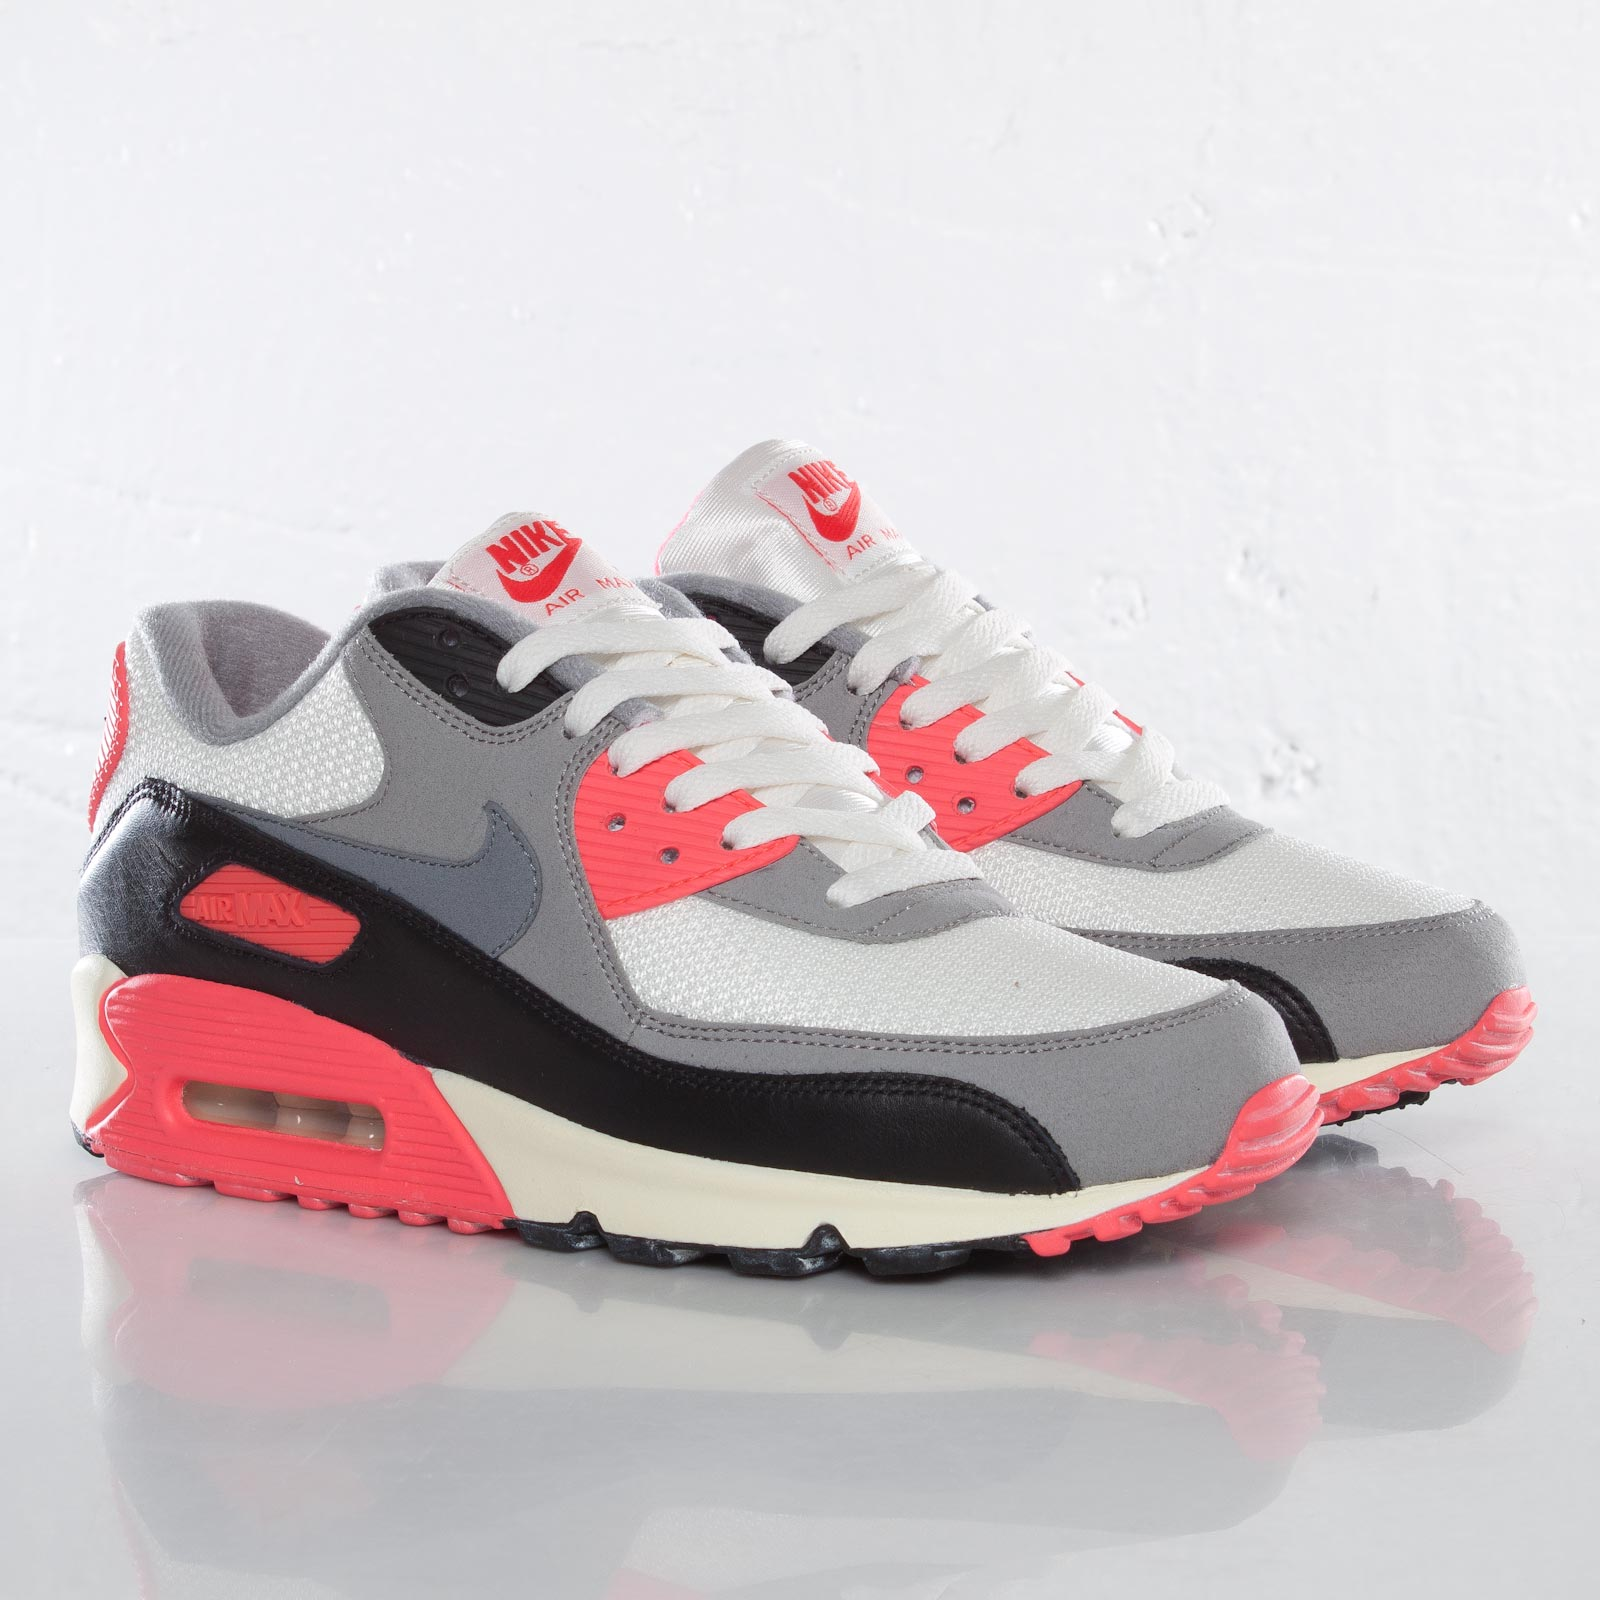 Air Max 90 Og Infrared Nike 543361 161 sailcool